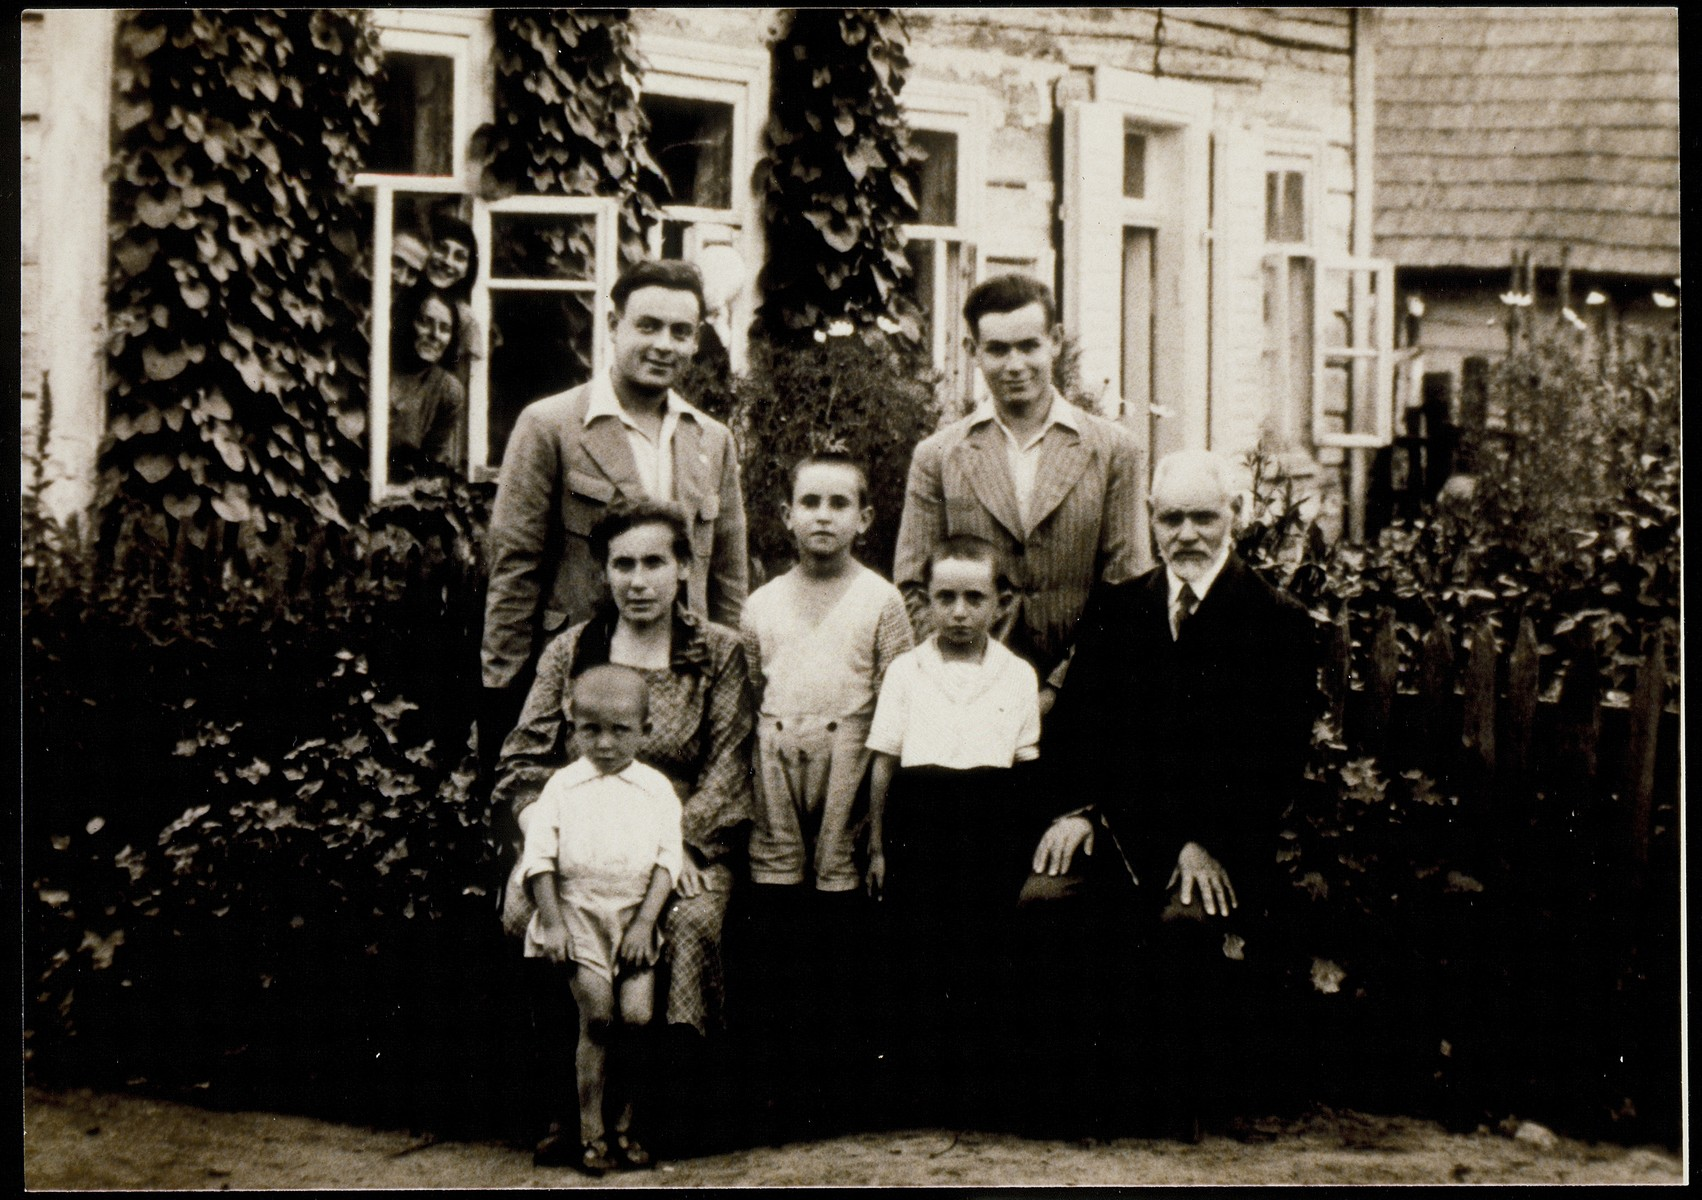 The Matikanski family poses for a family portrait in the garden outside its home.   Pictured are Reb Dovid Matikanski, his wife Nehama (nee Pecker) and two of their younger sons, Haikl (standing left) and Yitzhak.    Dovid Matikanski was one of Eisikes's custom tailors.   He, the three young children with him and the people peering out the window were murdred in the September 1941 mass killing action.  Nehama, Haikl and Yitzhak perished in Majdanek.